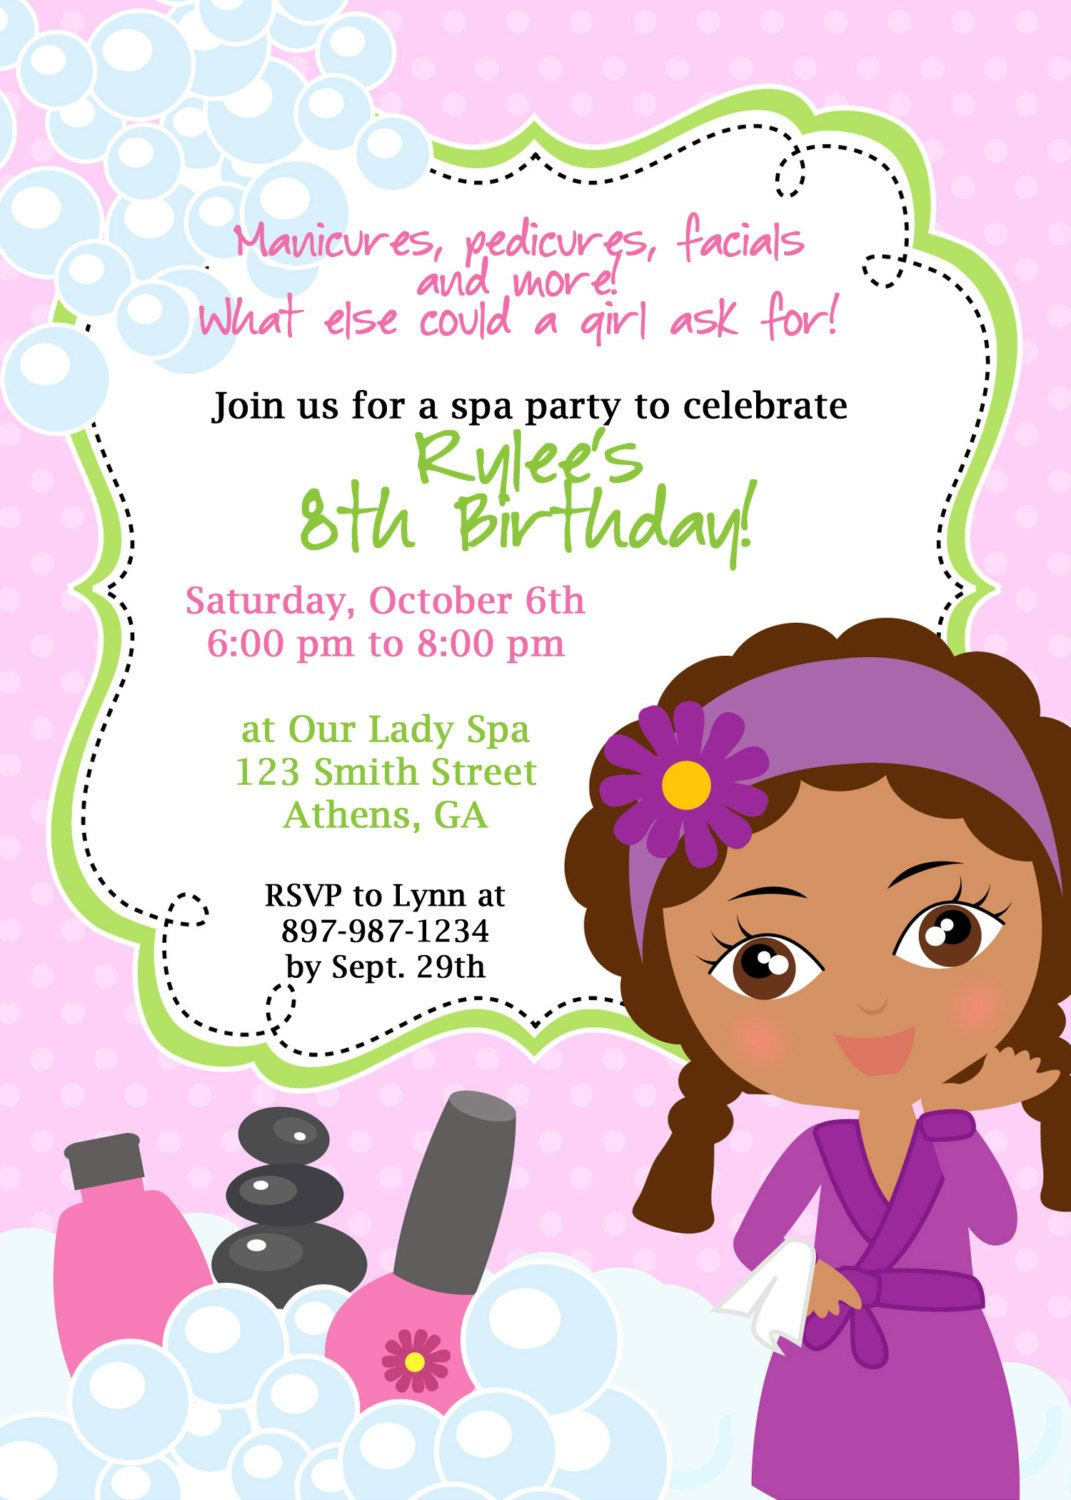 Spa birthday party invitation african american invitation spa diy sassy spa party invitation this is the invitation we customized for my daughters 10th birthday spa party filmwisefo